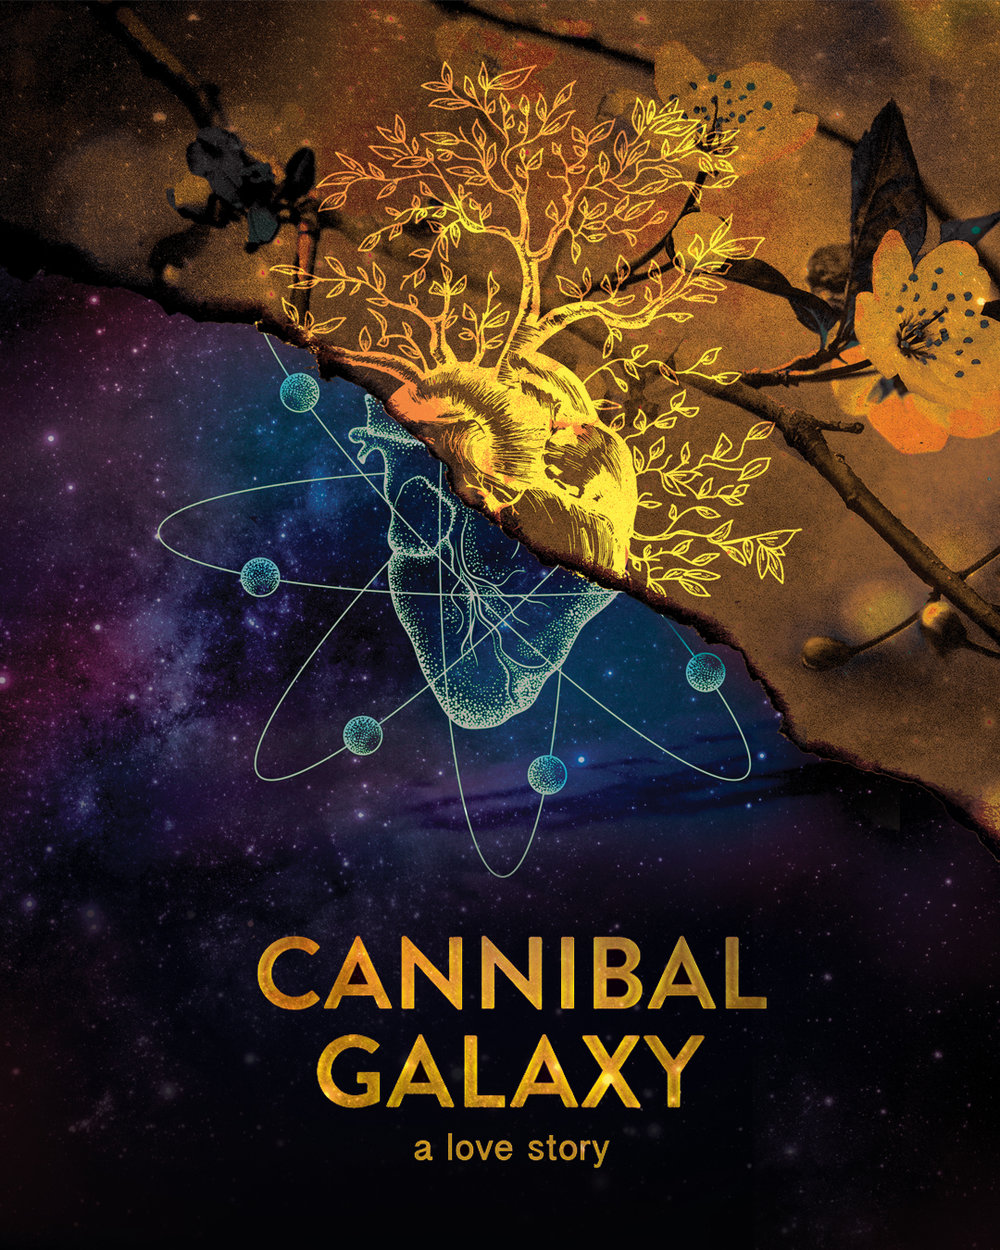 Cannibal Galaxy